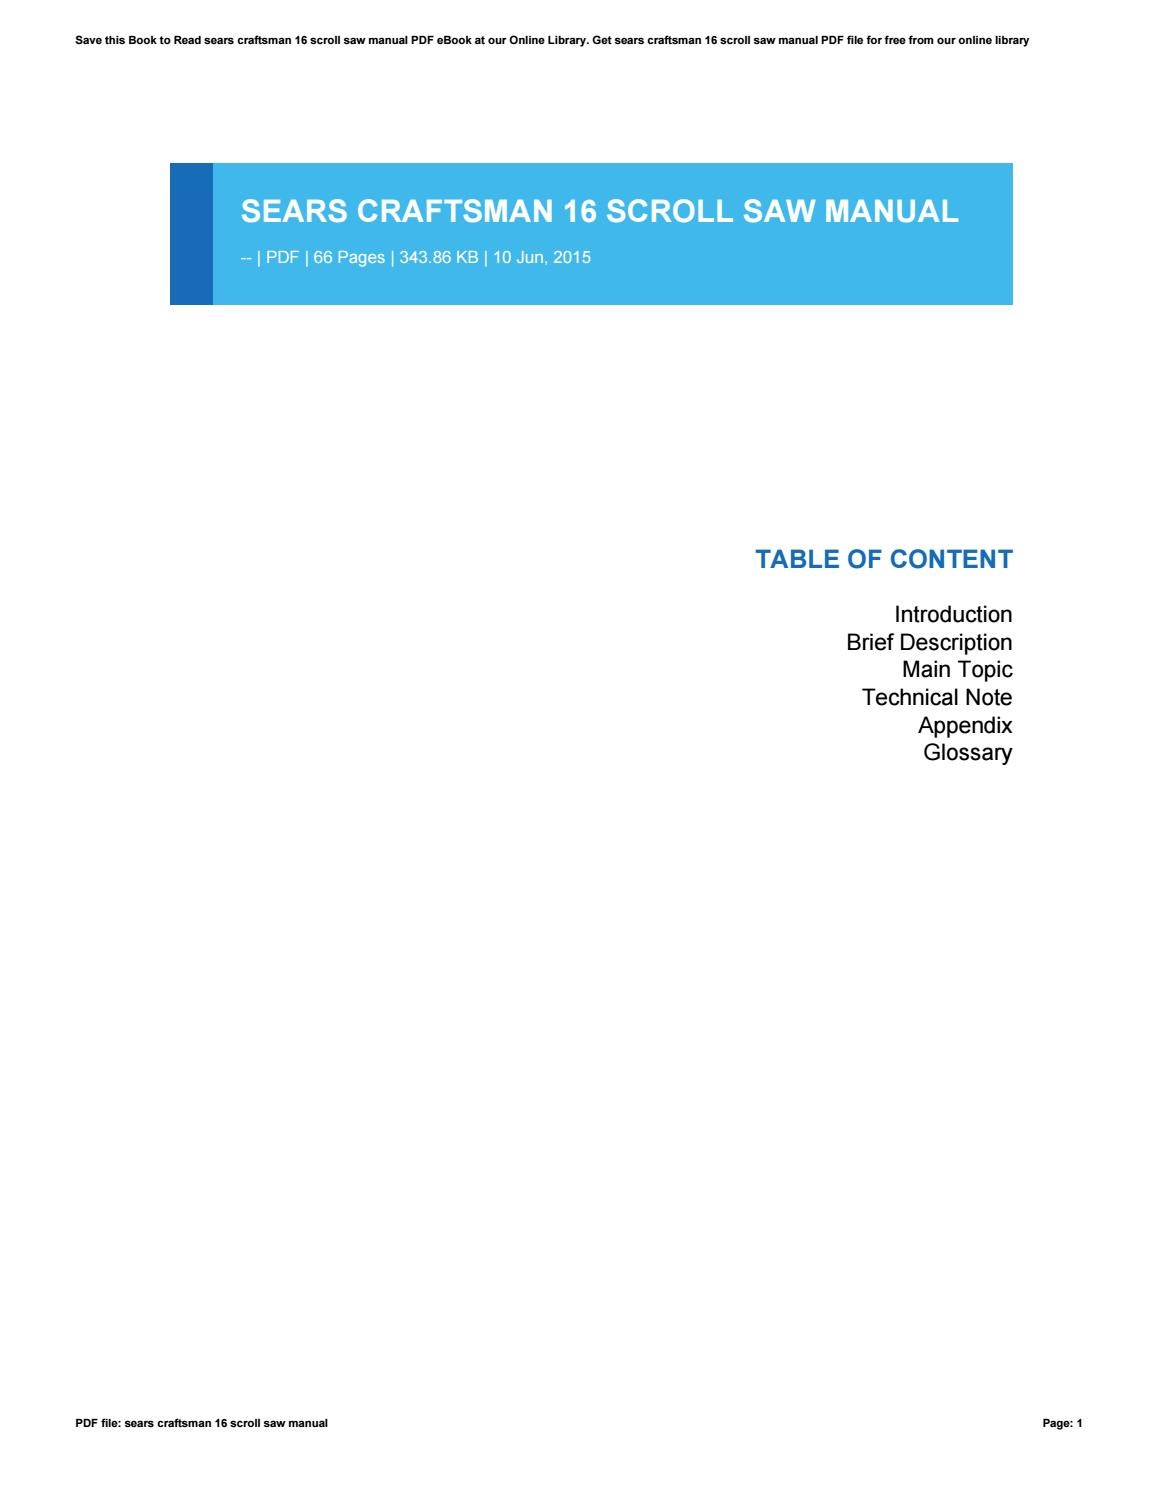 Craftsman manual ebook contractor u0027s survival manual revised book ebook array sears craftsman 16 scroll saw manual by c4075 issuu rh issuu fandeluxe Image collections